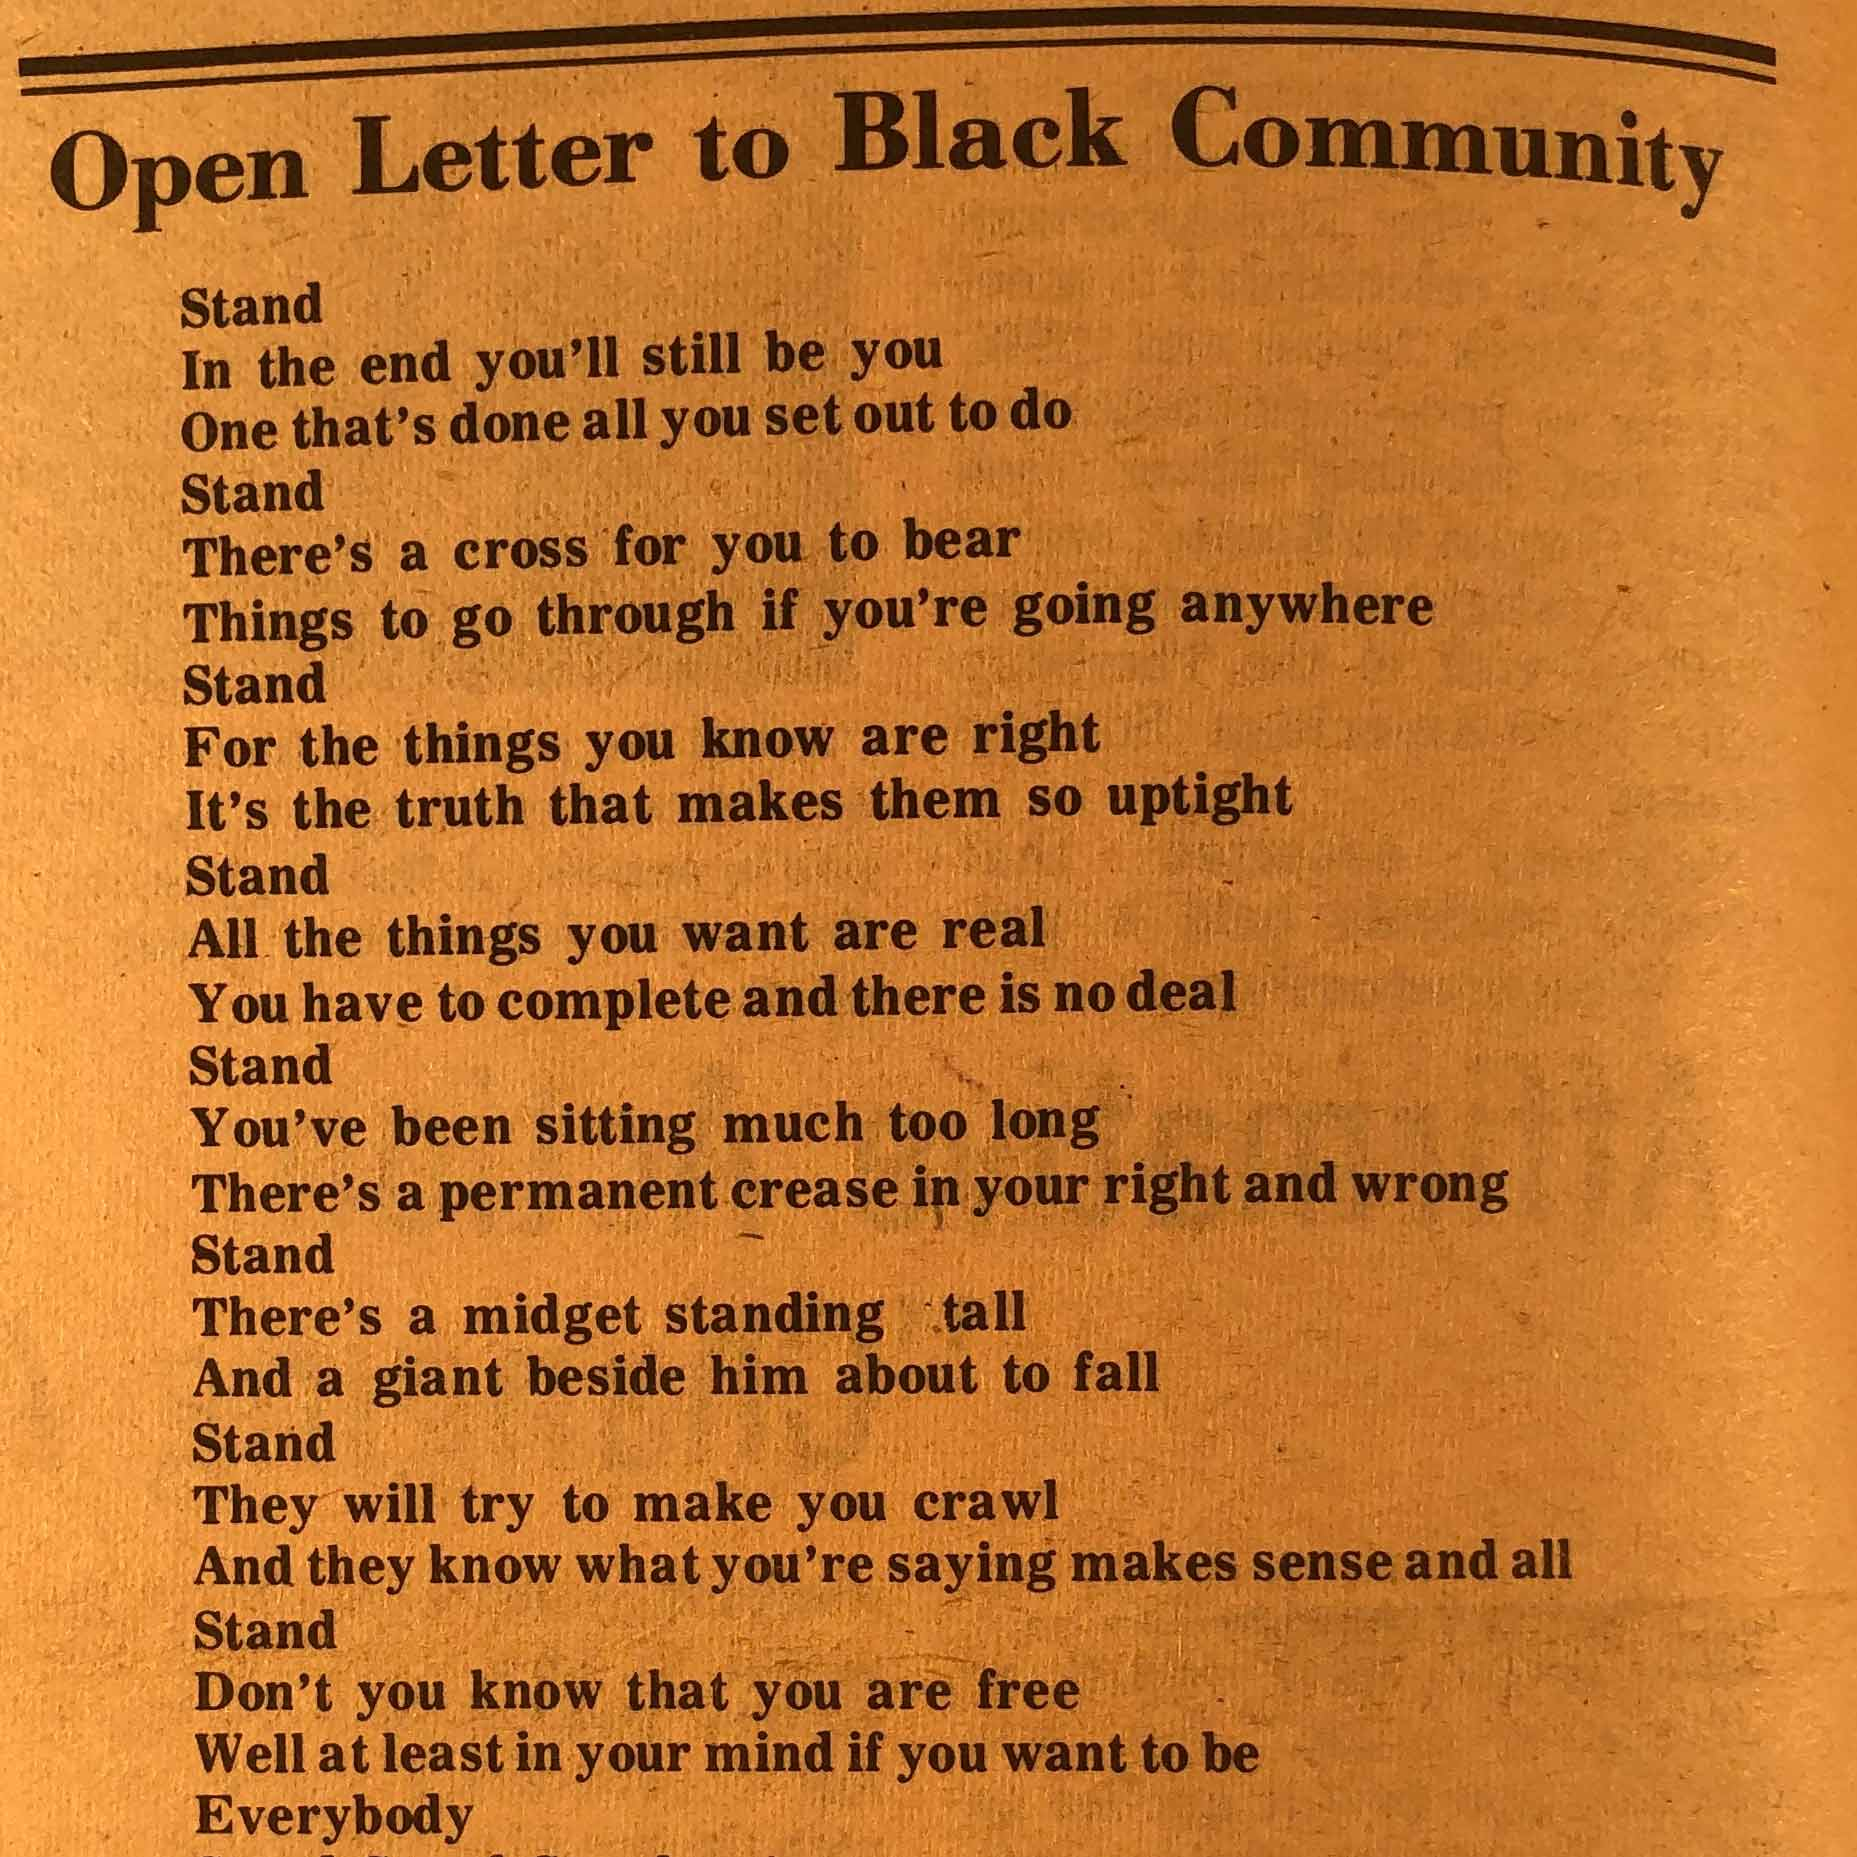 """This poem in the Afro-American Society publication Black Praxis calls for members of Dartmouth's Black community to stand in solidarity with one another and for what is morally right in the fight for equality. The poem's co-authors Eileen Cave, Monica Hargrove, and Judi Redding also collaborated on the July 1975 publication """"Institutional Racism and Student Life at Dartmouth,"""" known colloquially amongst Dartmouth administrators as the """"Redding Report."""""""